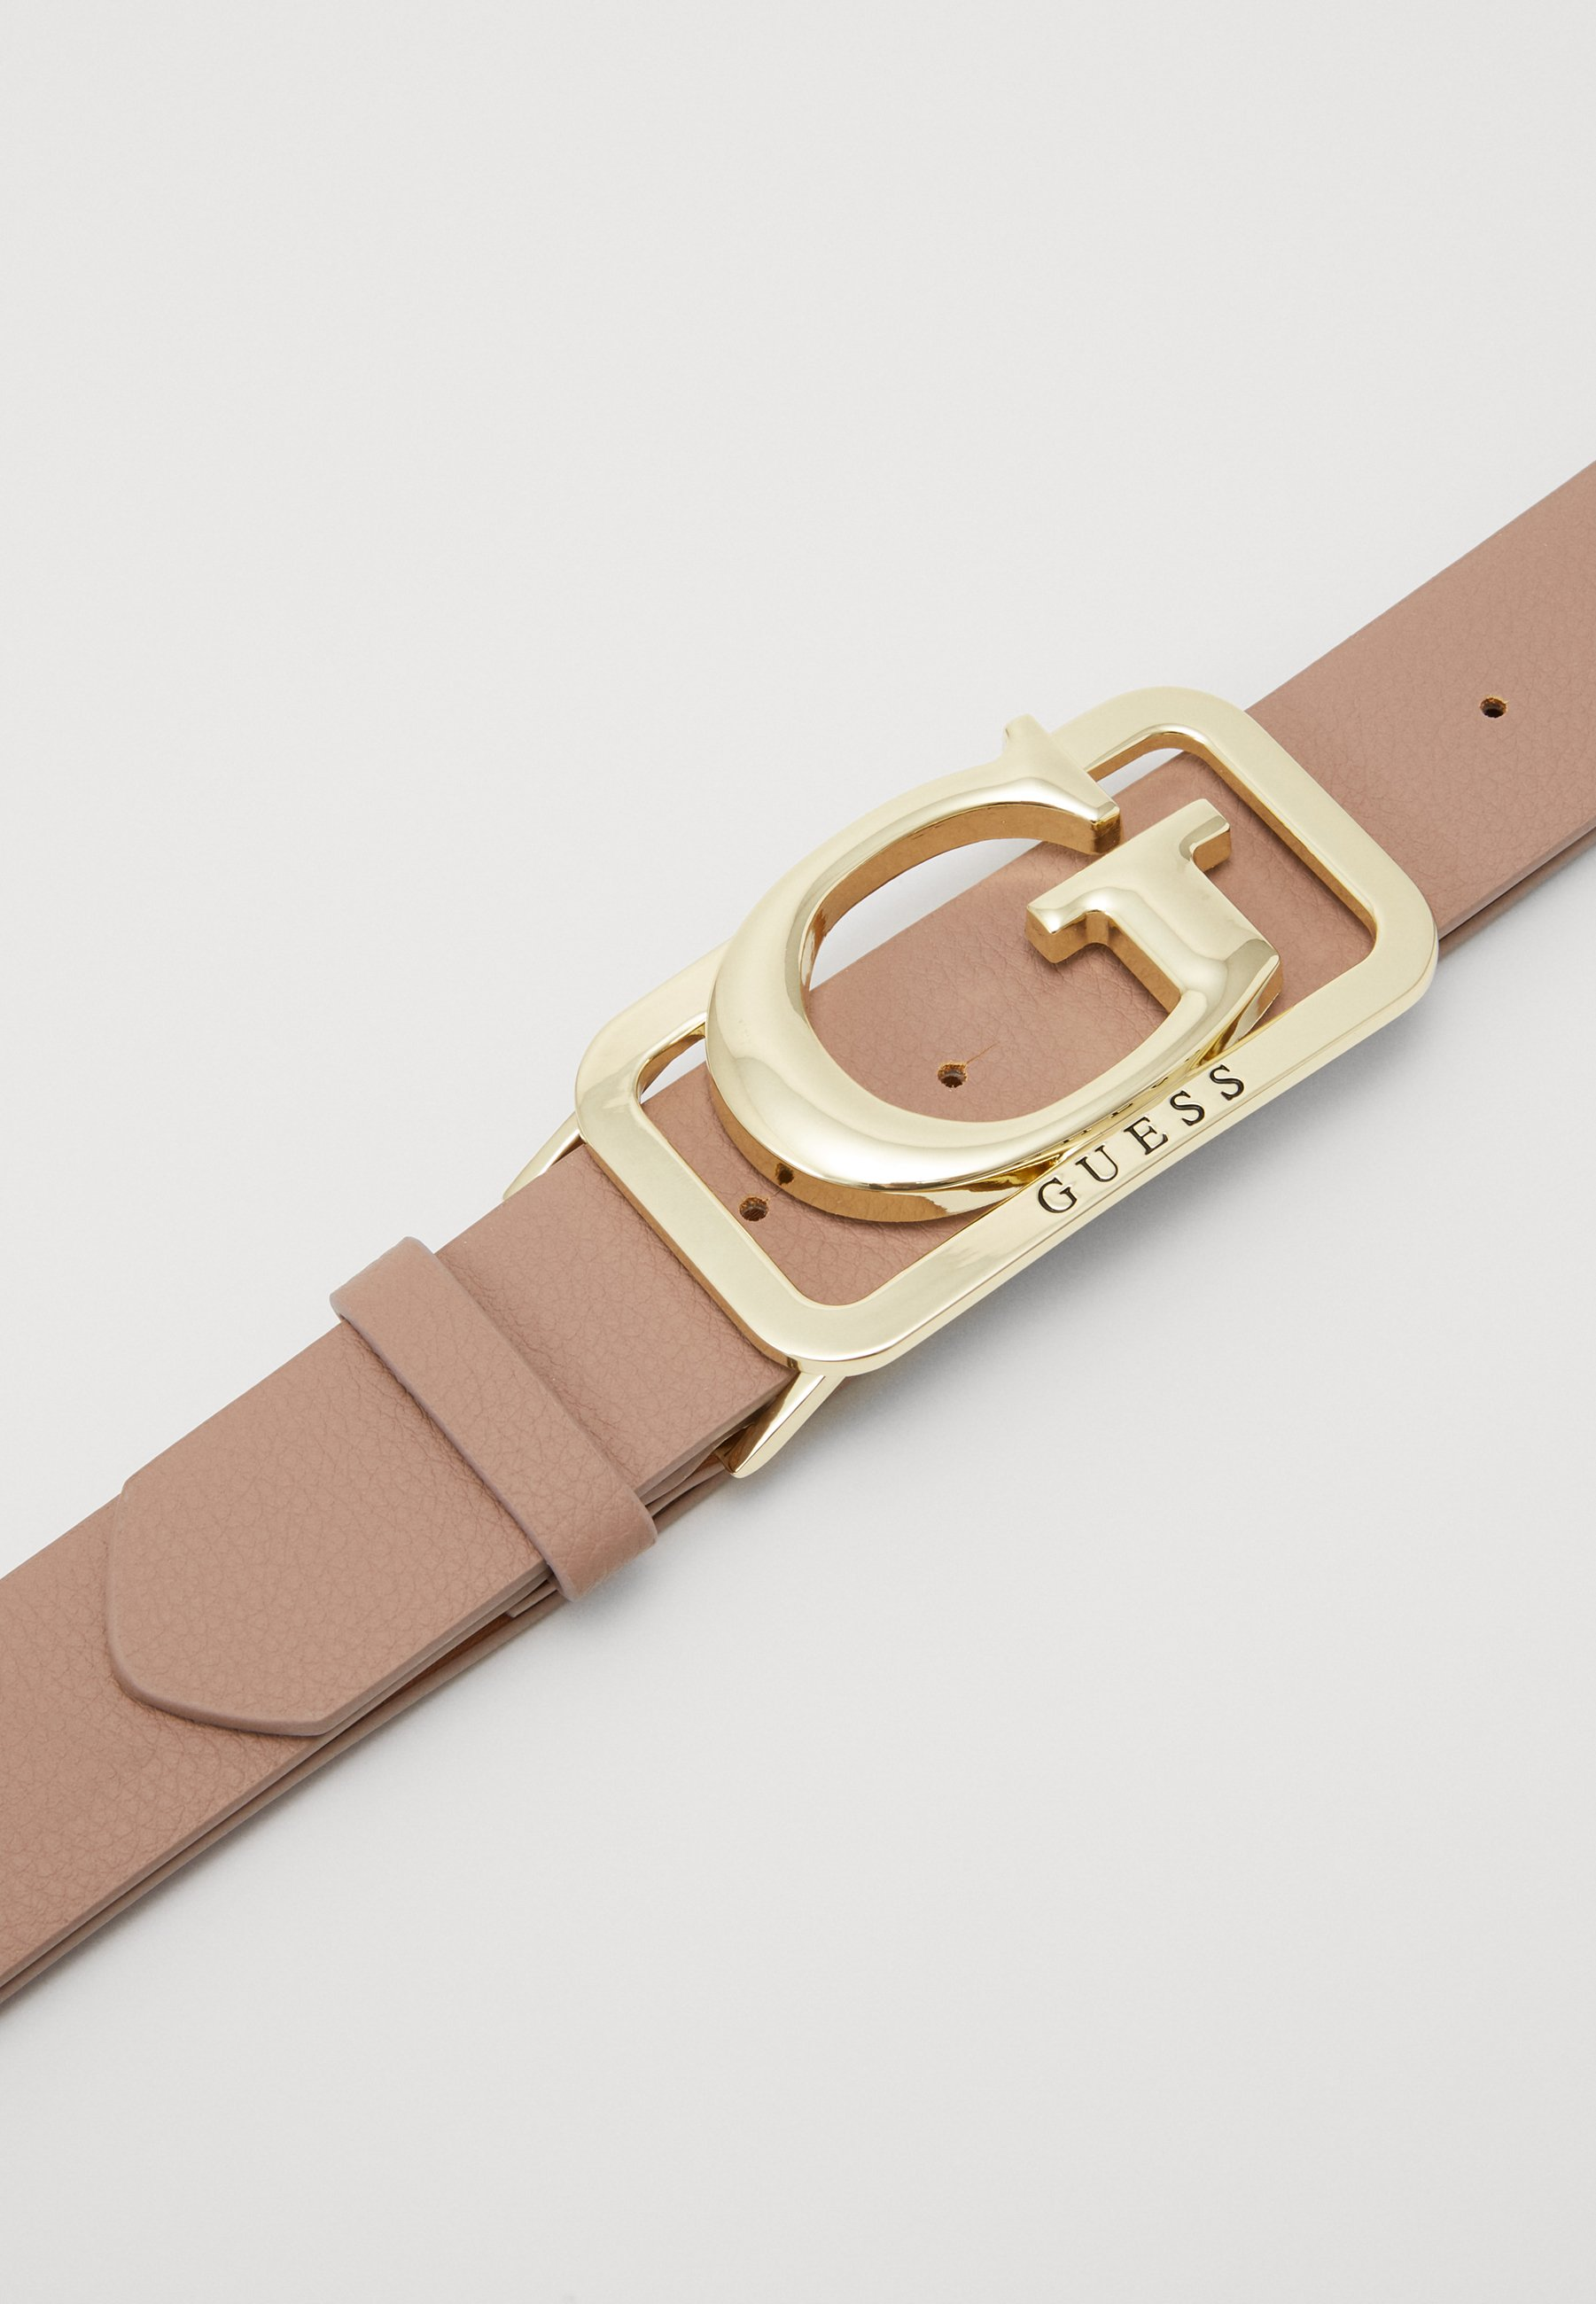 Order Official Accessories Guess PANT BELT Belt taupe t8U1GijyC wyEMu7HlW